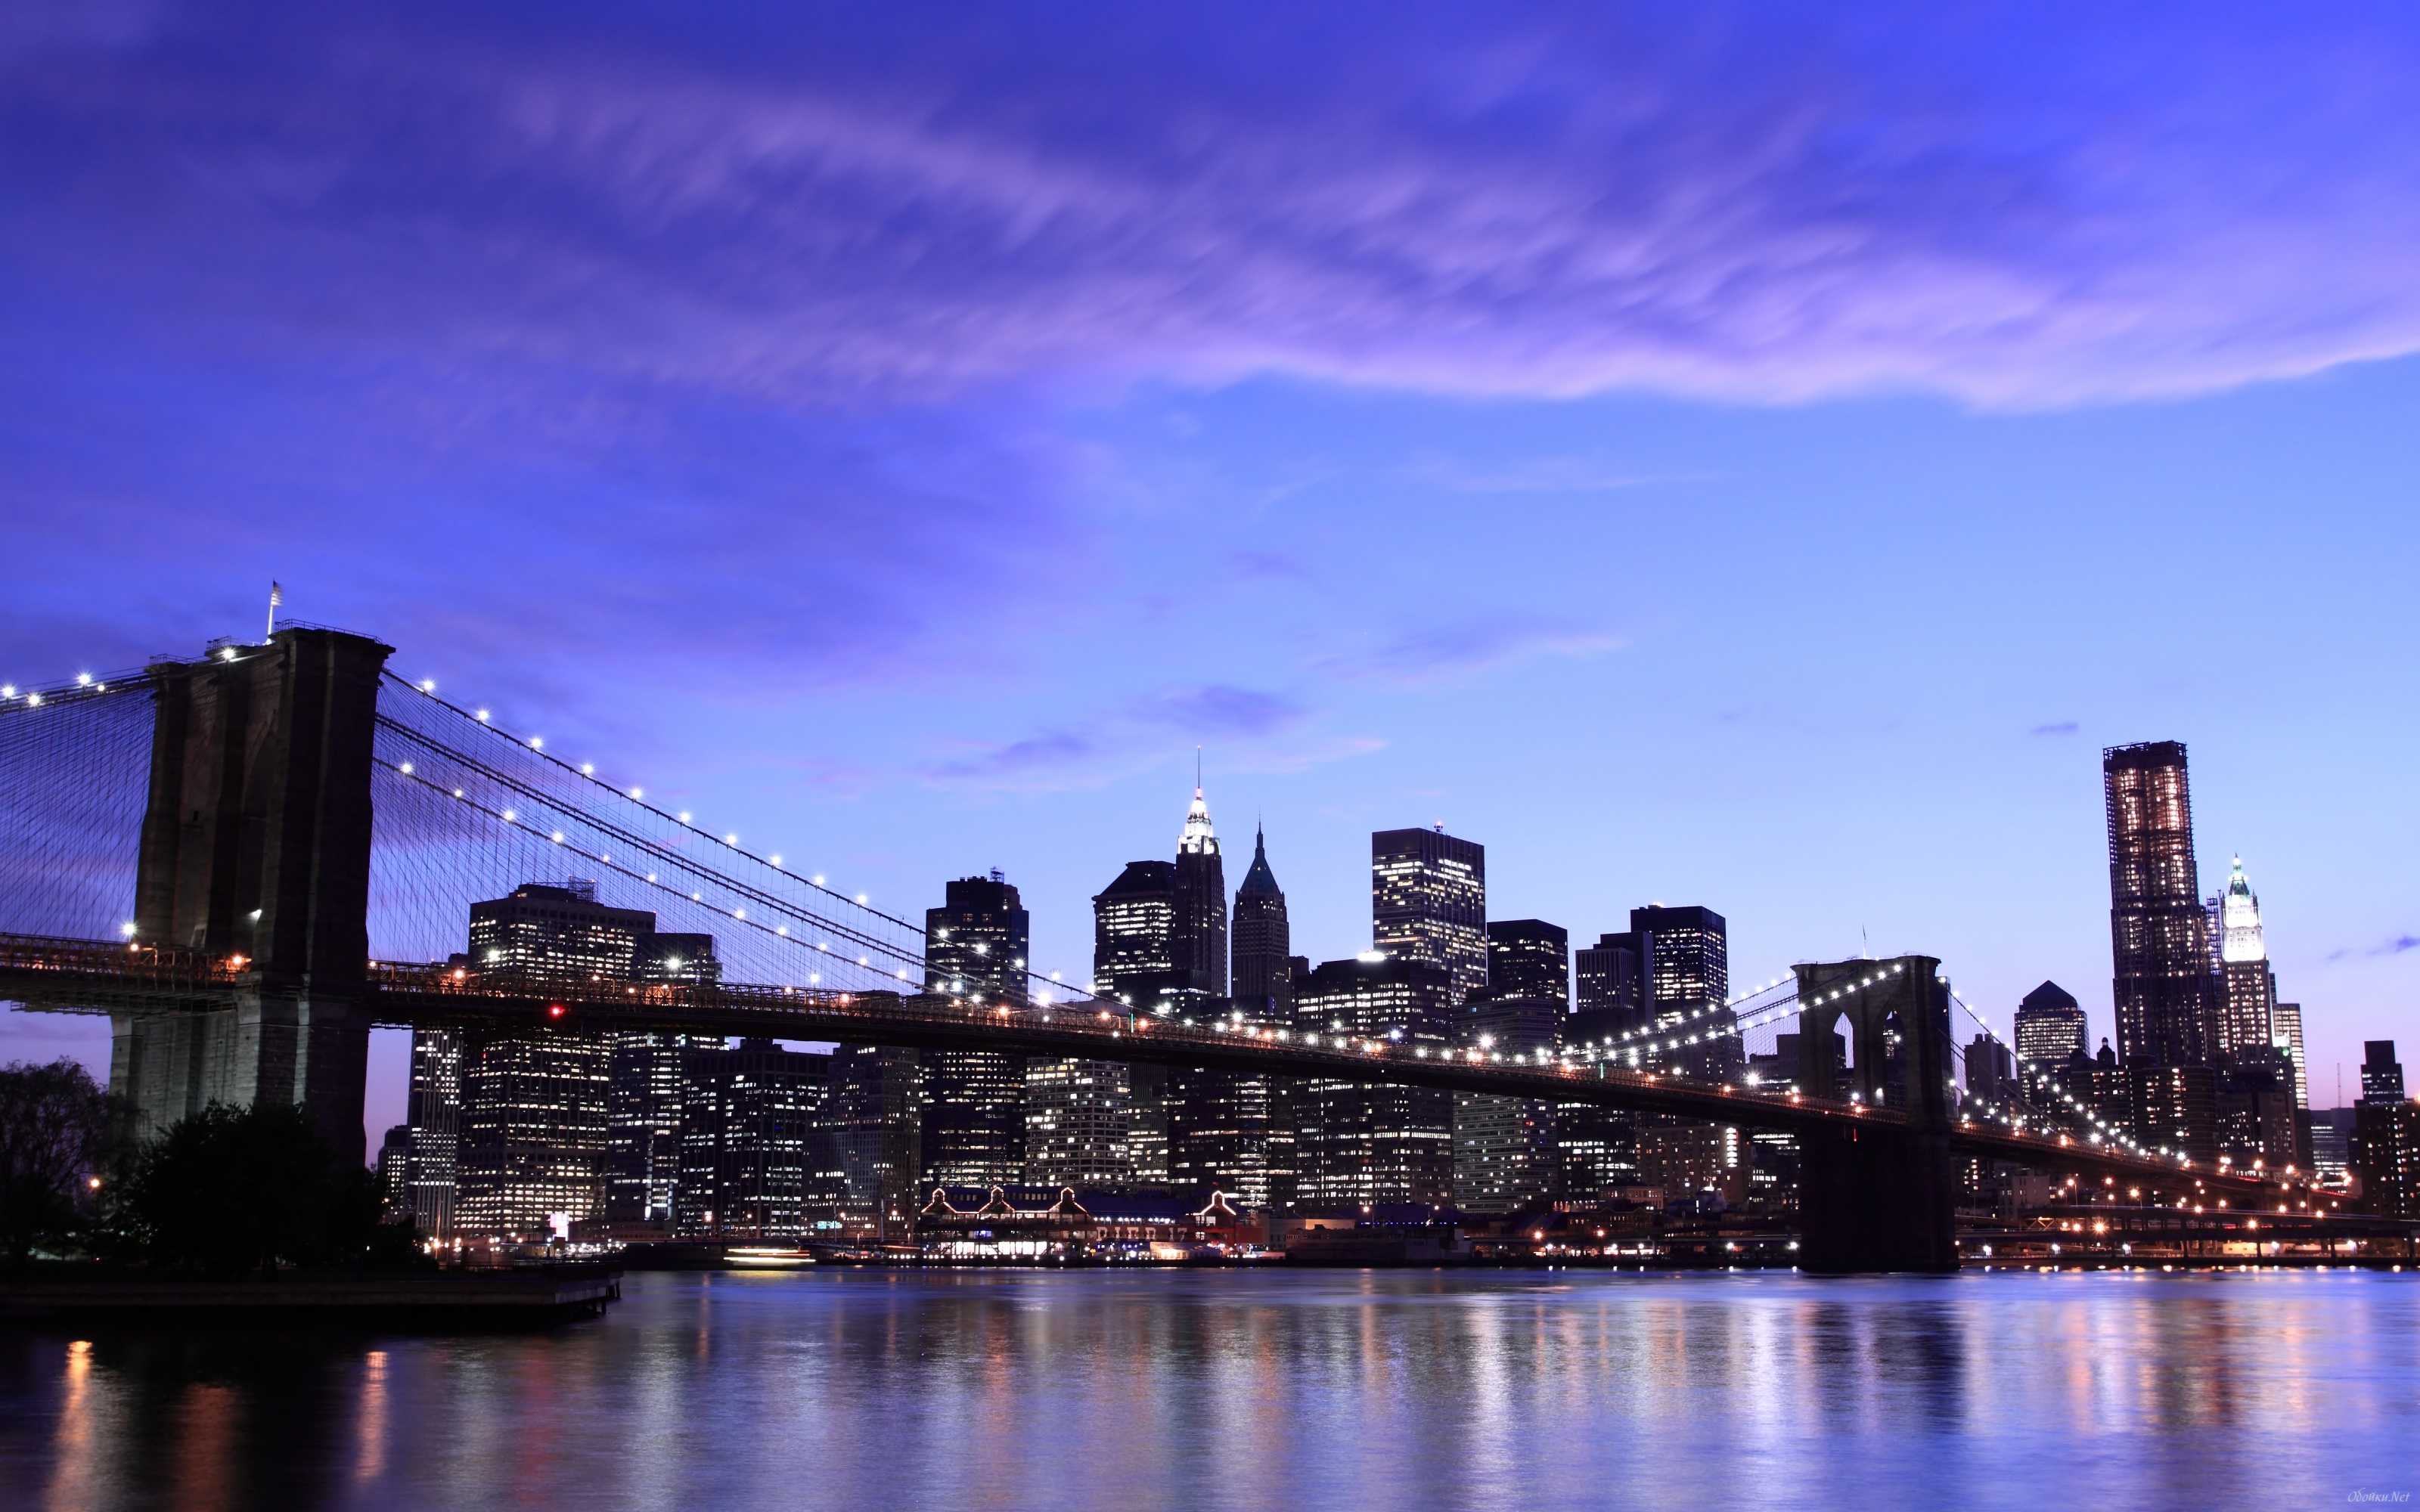 New York At Night Wallpaper Desktop Background 5 5 1 votes 3200x2000